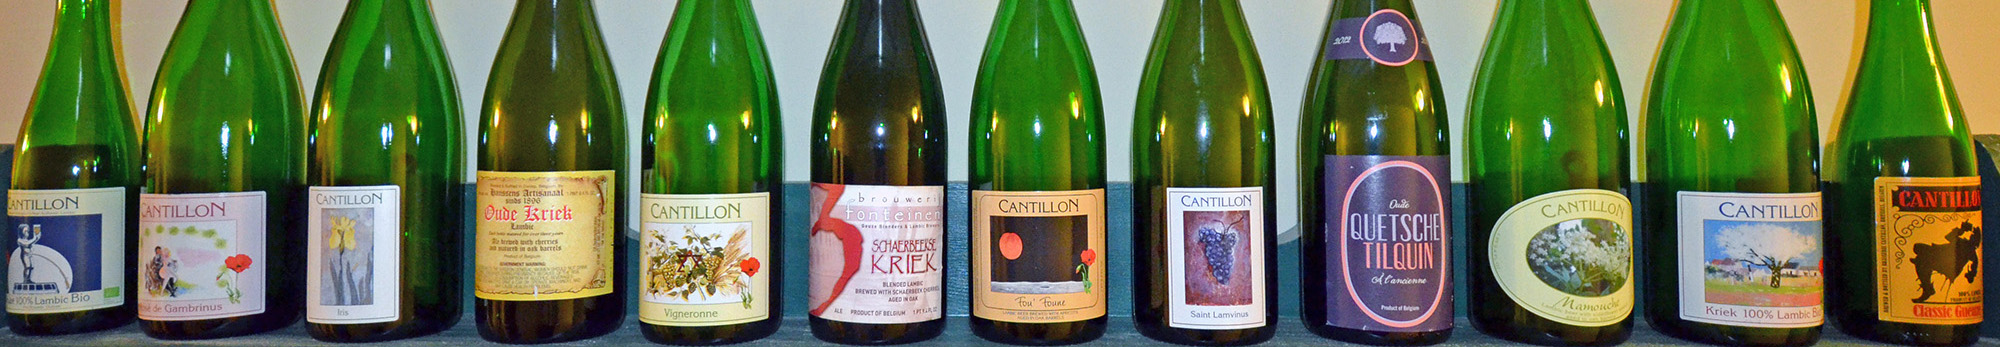 lambic bottles header 2